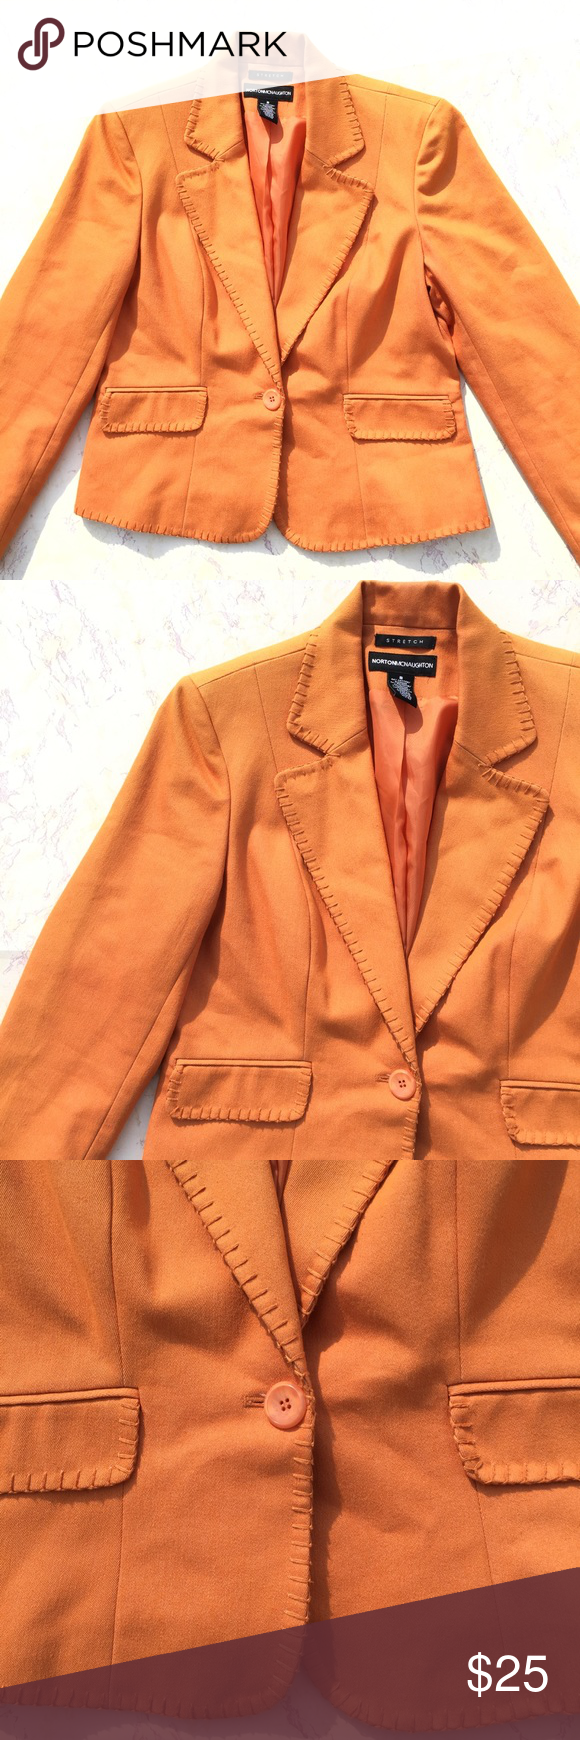 {Norton McNaughton} Orange Long Sleeve Blazer Pretty orange long sleeve Blazer in great condition! Has a lot of stretch. Size 8. Norton McNaughton Jackets & Coats Blazers